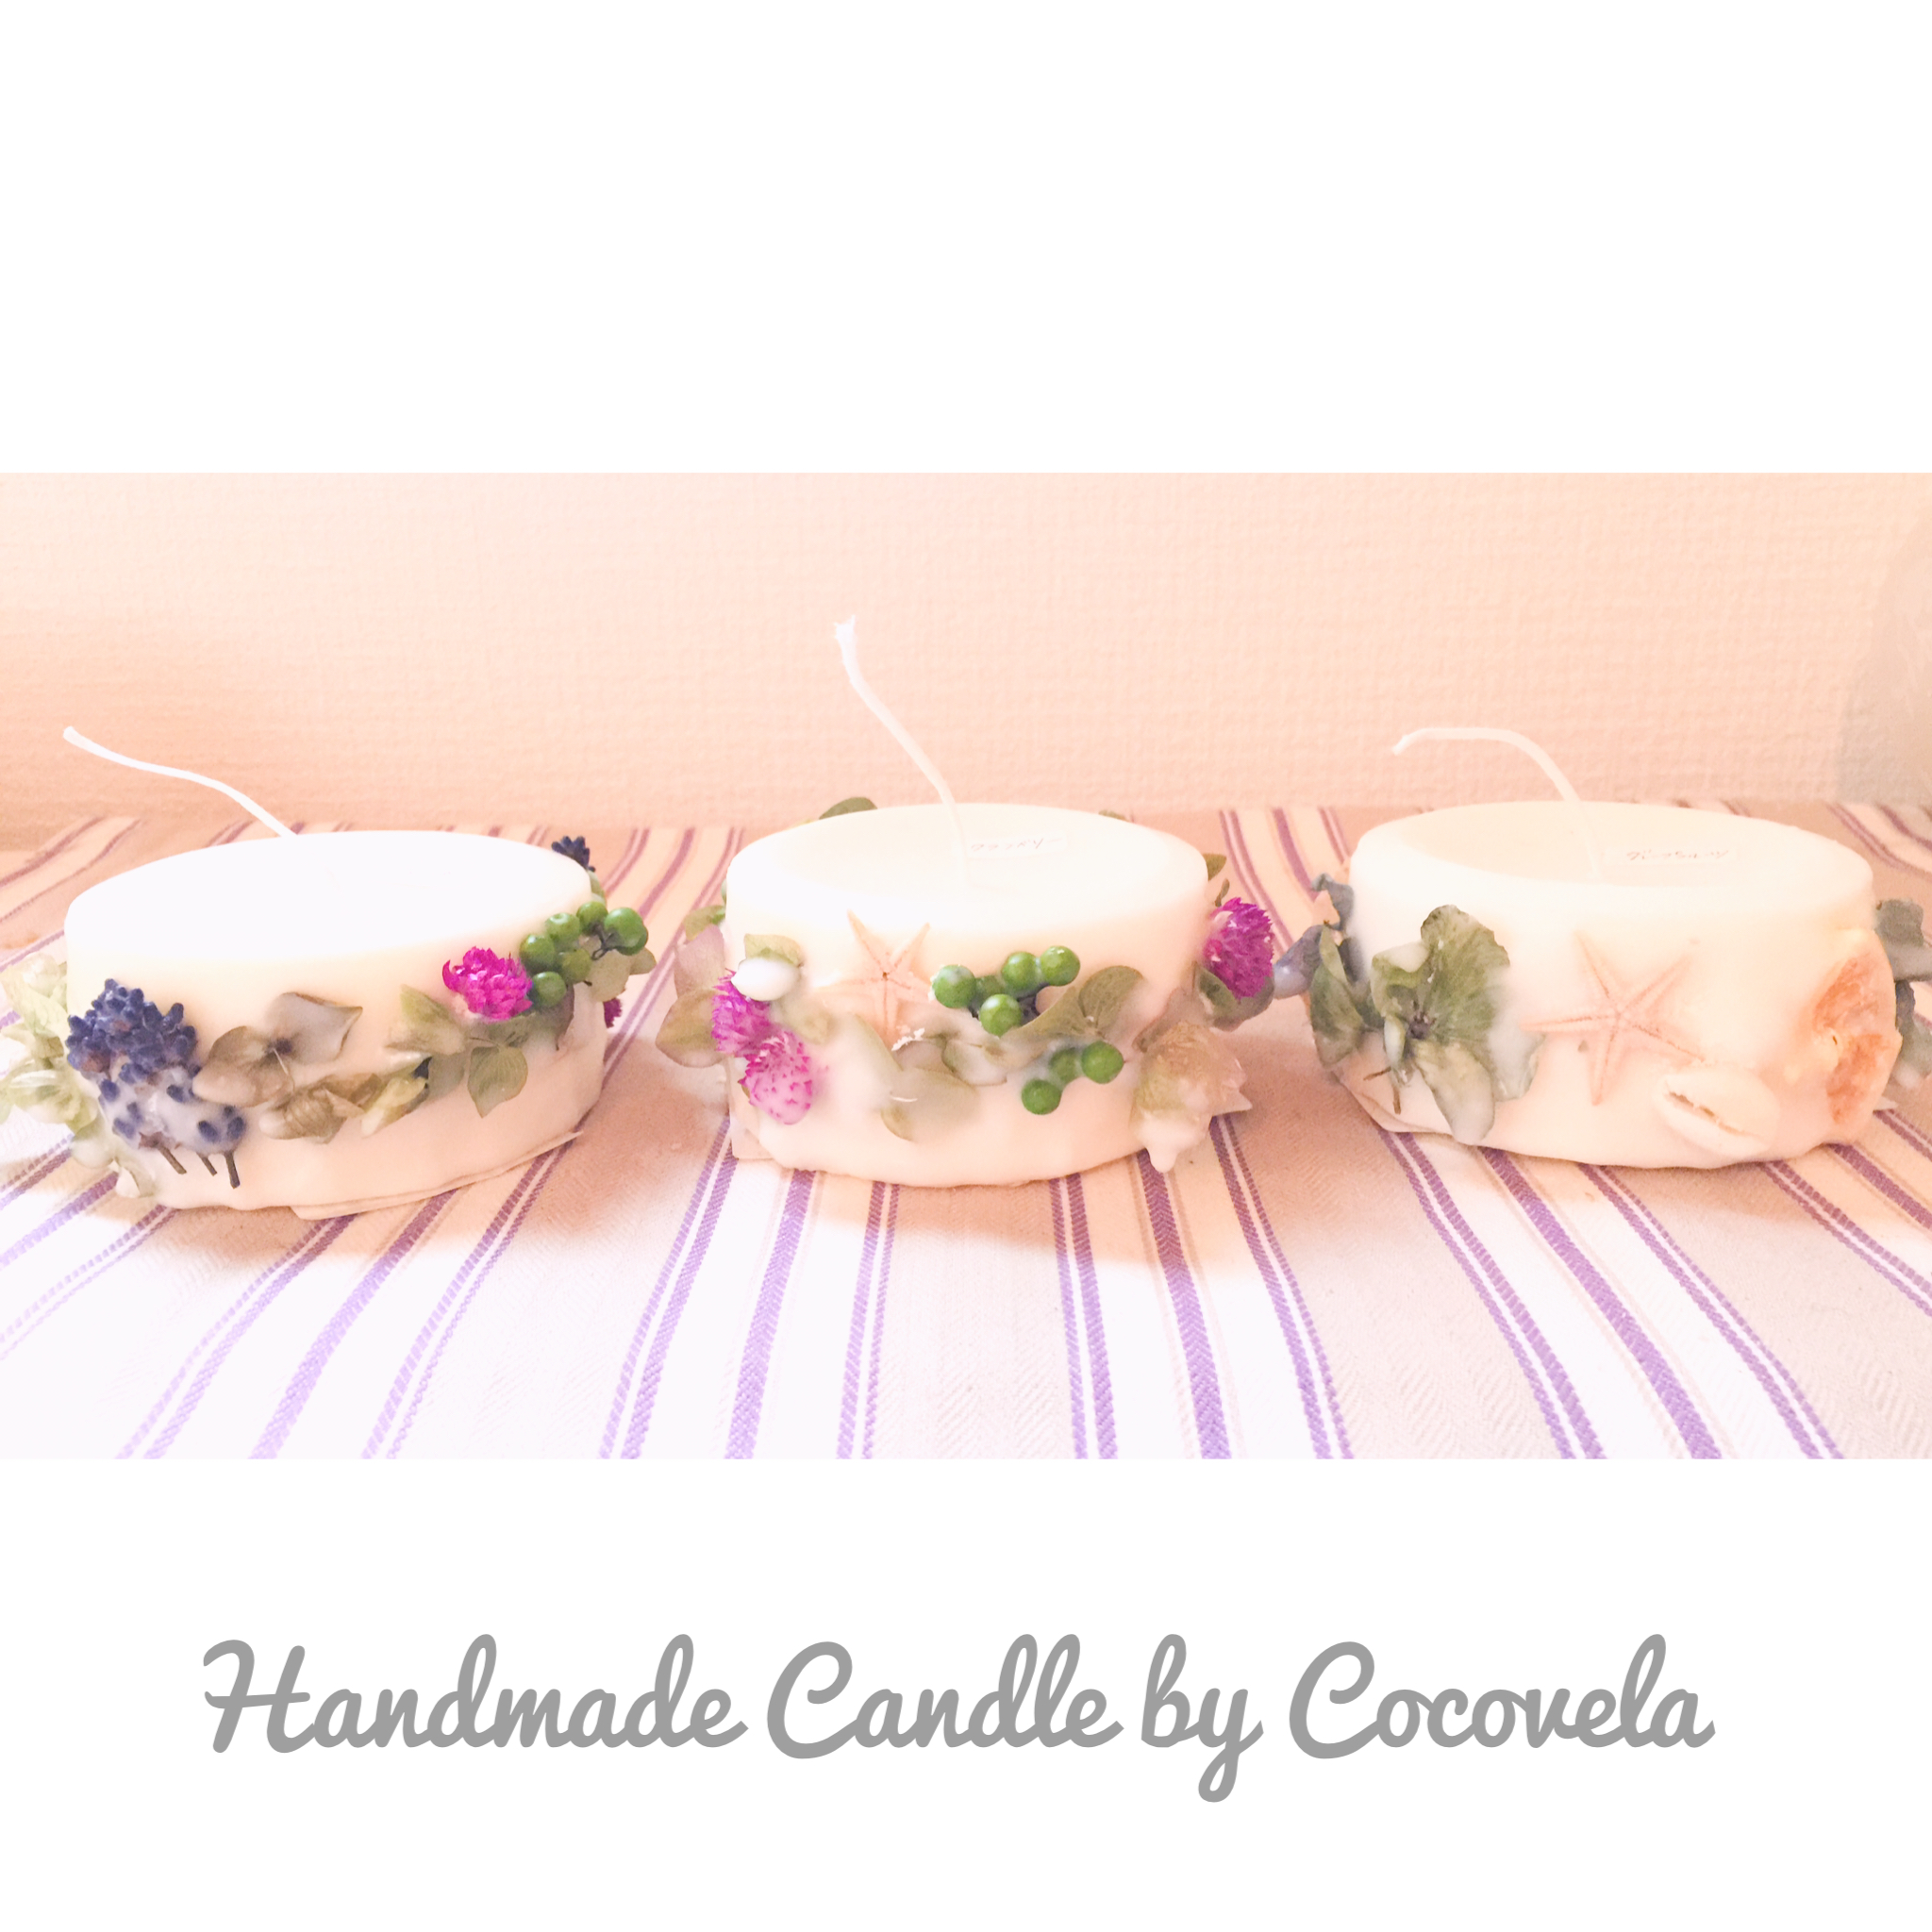 Handmade Candle by Cocovela♡